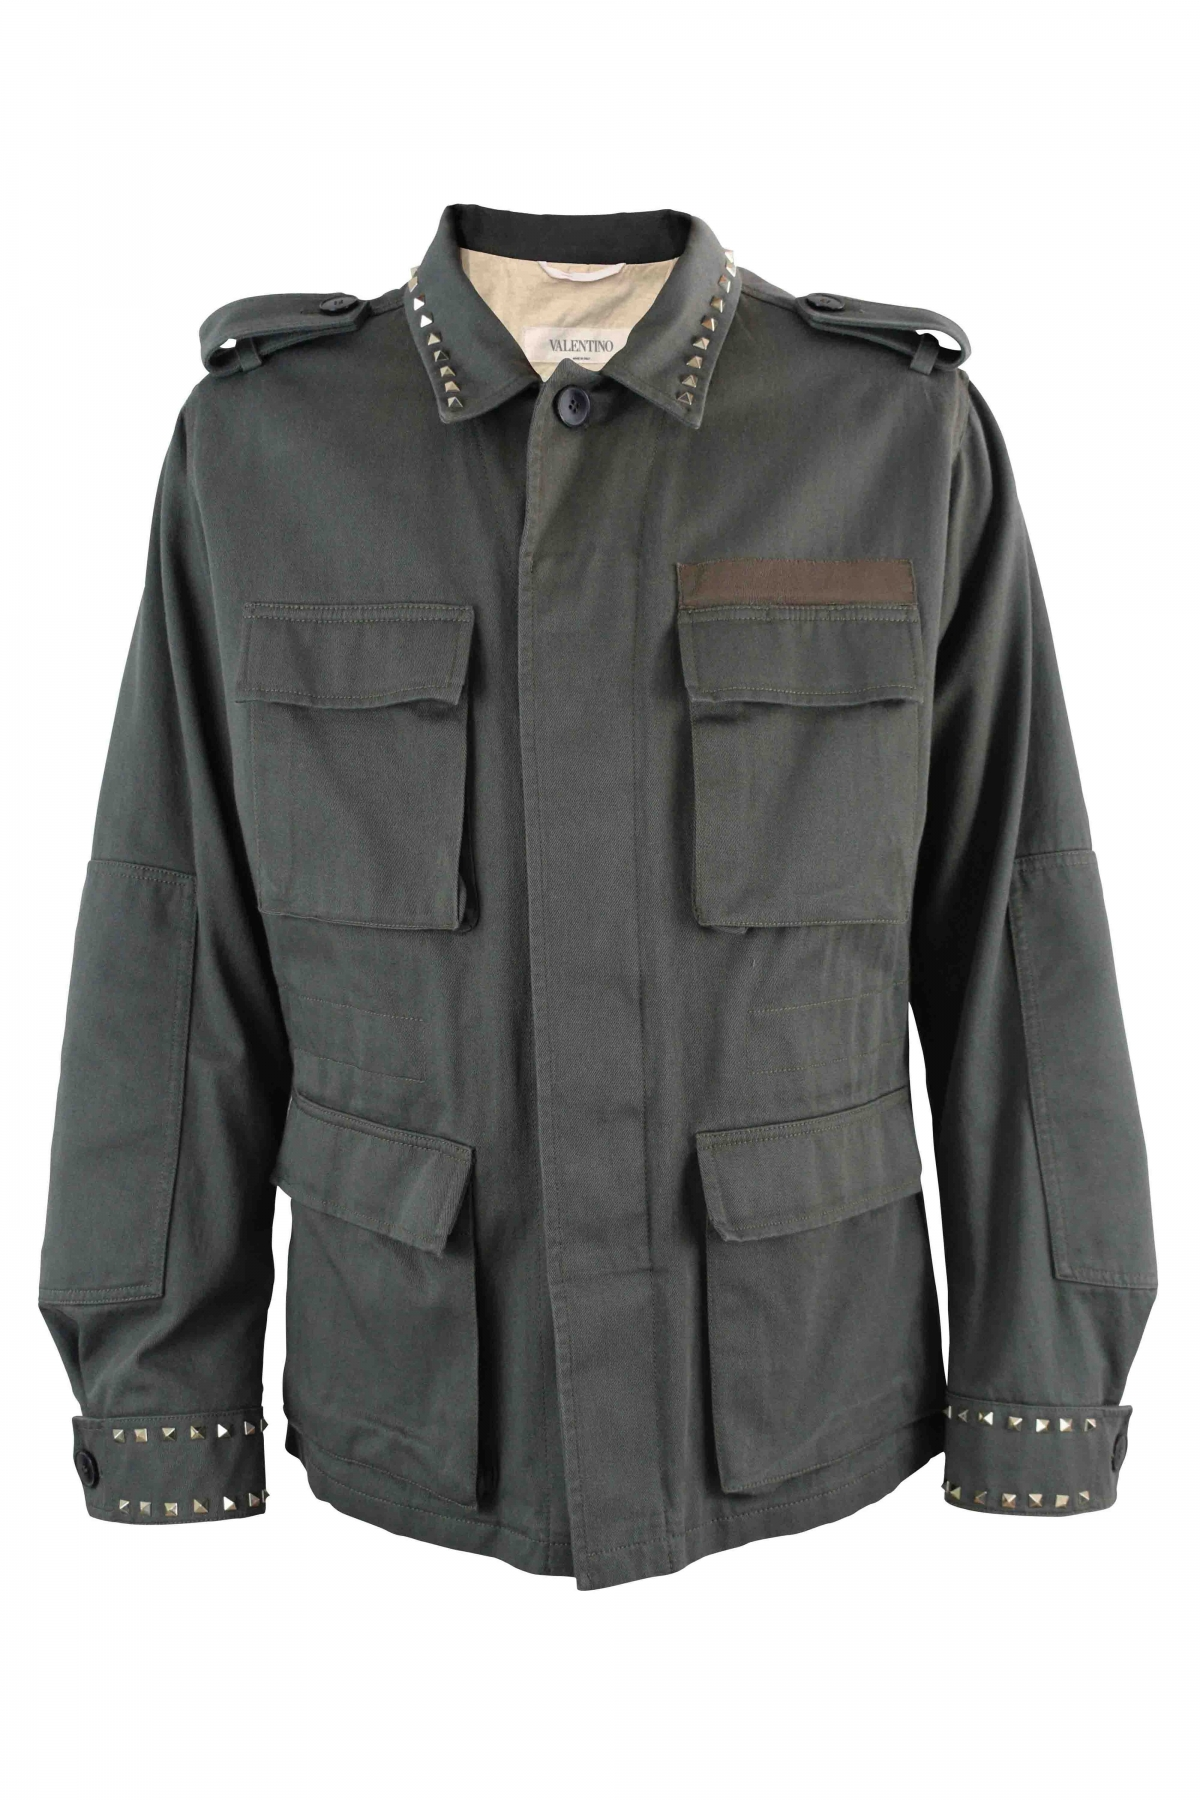 Valentino Rockstud kaki jacket with 4 pockets at the front and platinium finish studs on the neck and the sleeves